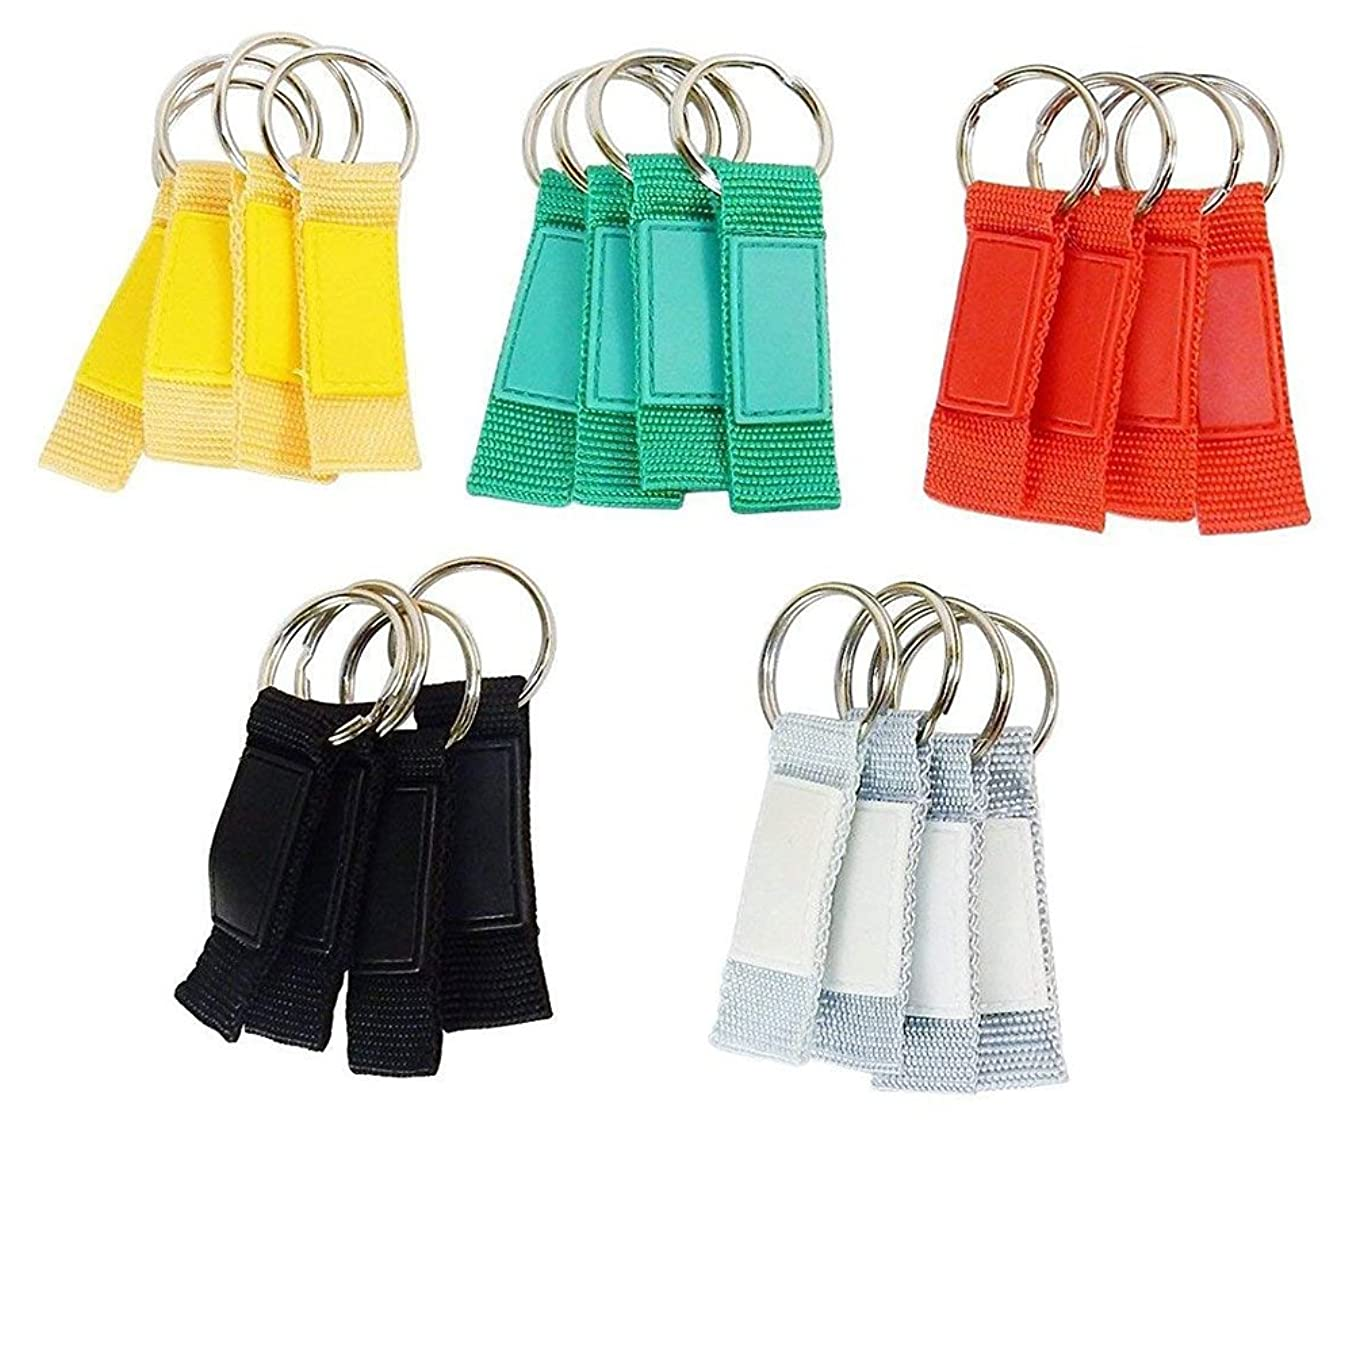 Lot of 20 - Key Rings, Nylon Webbing Fob With Silicone Thumb Pad, Assorted Colors - Printable.